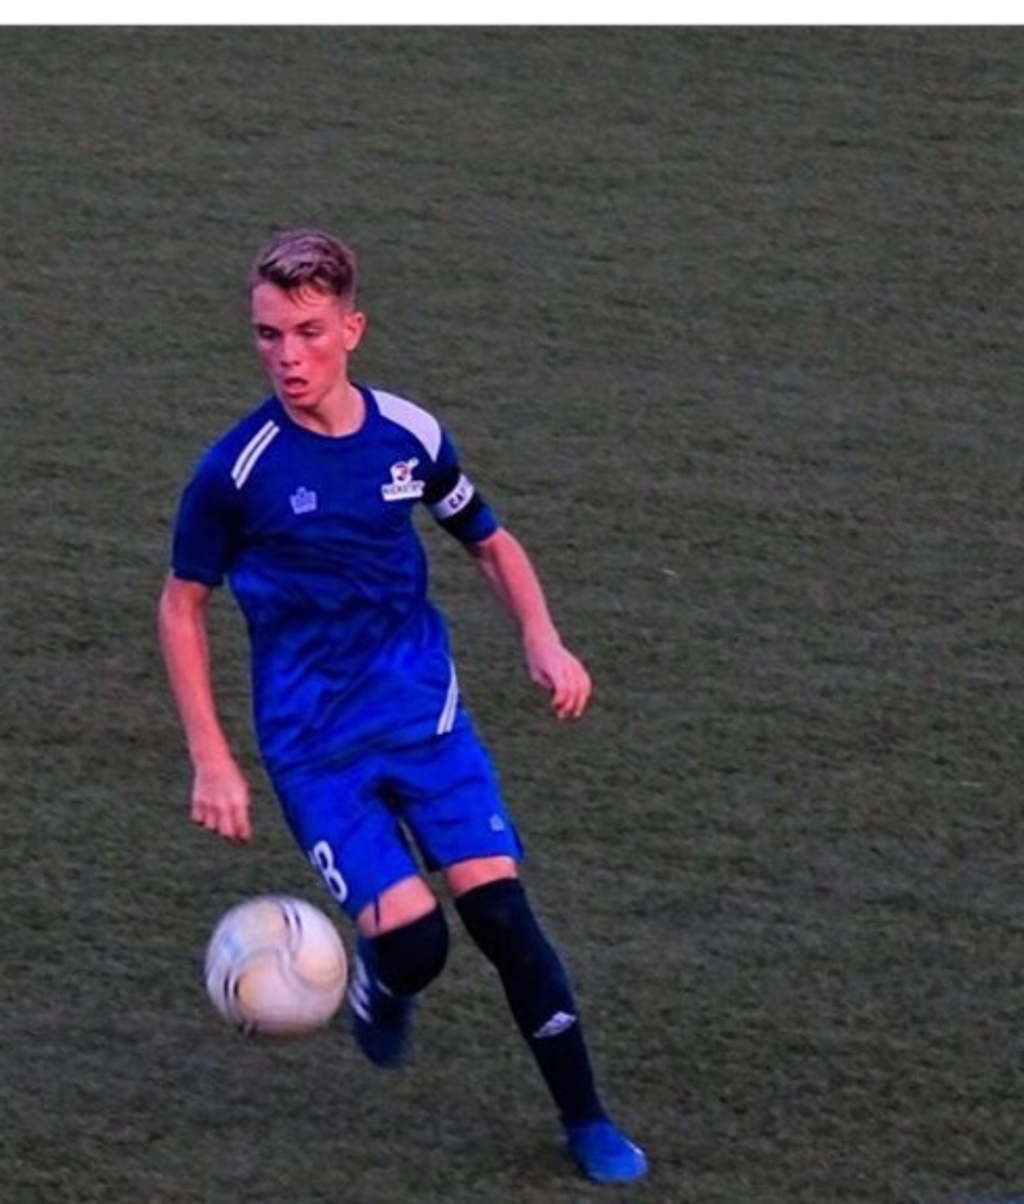 National youth player Axel Funk in action